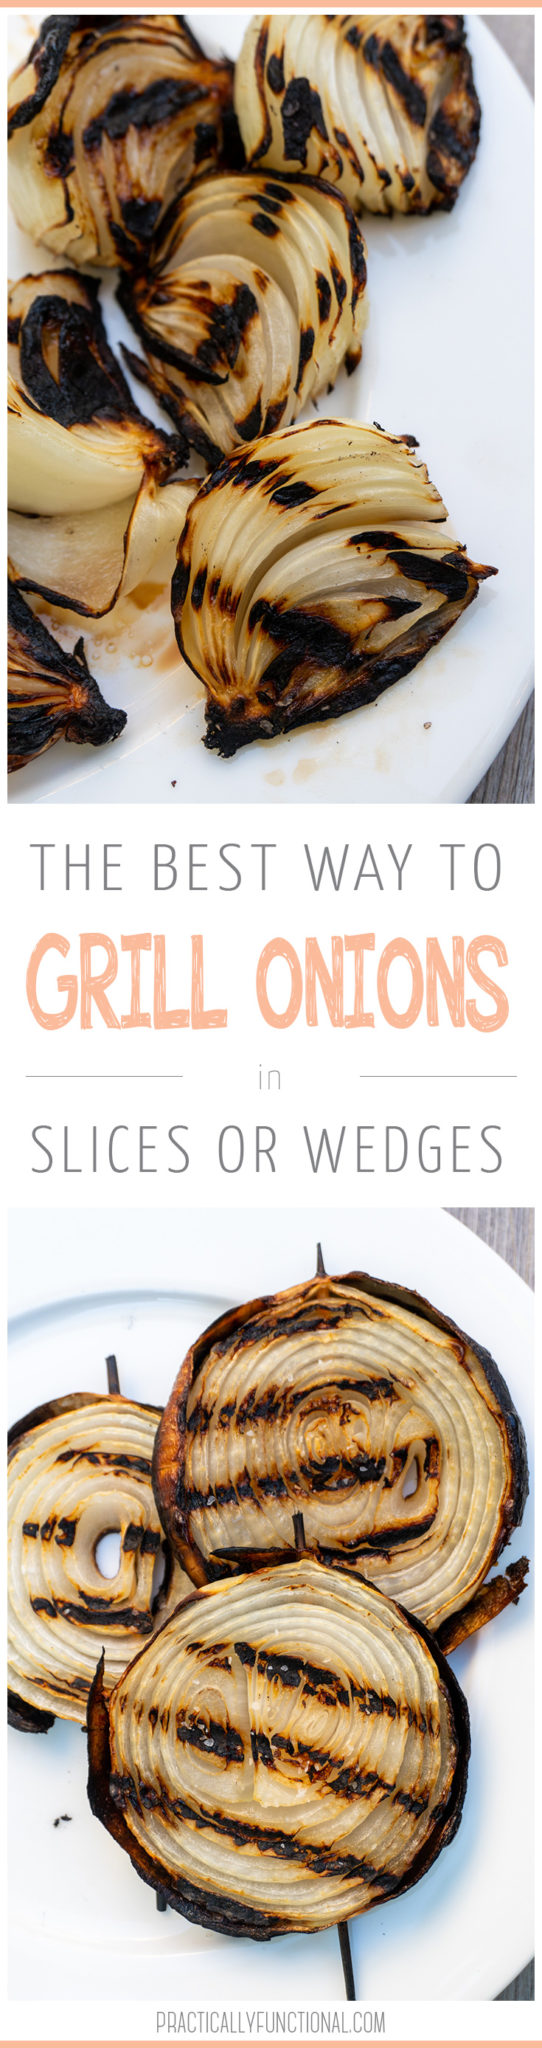 How to grill onions in wedges or slices